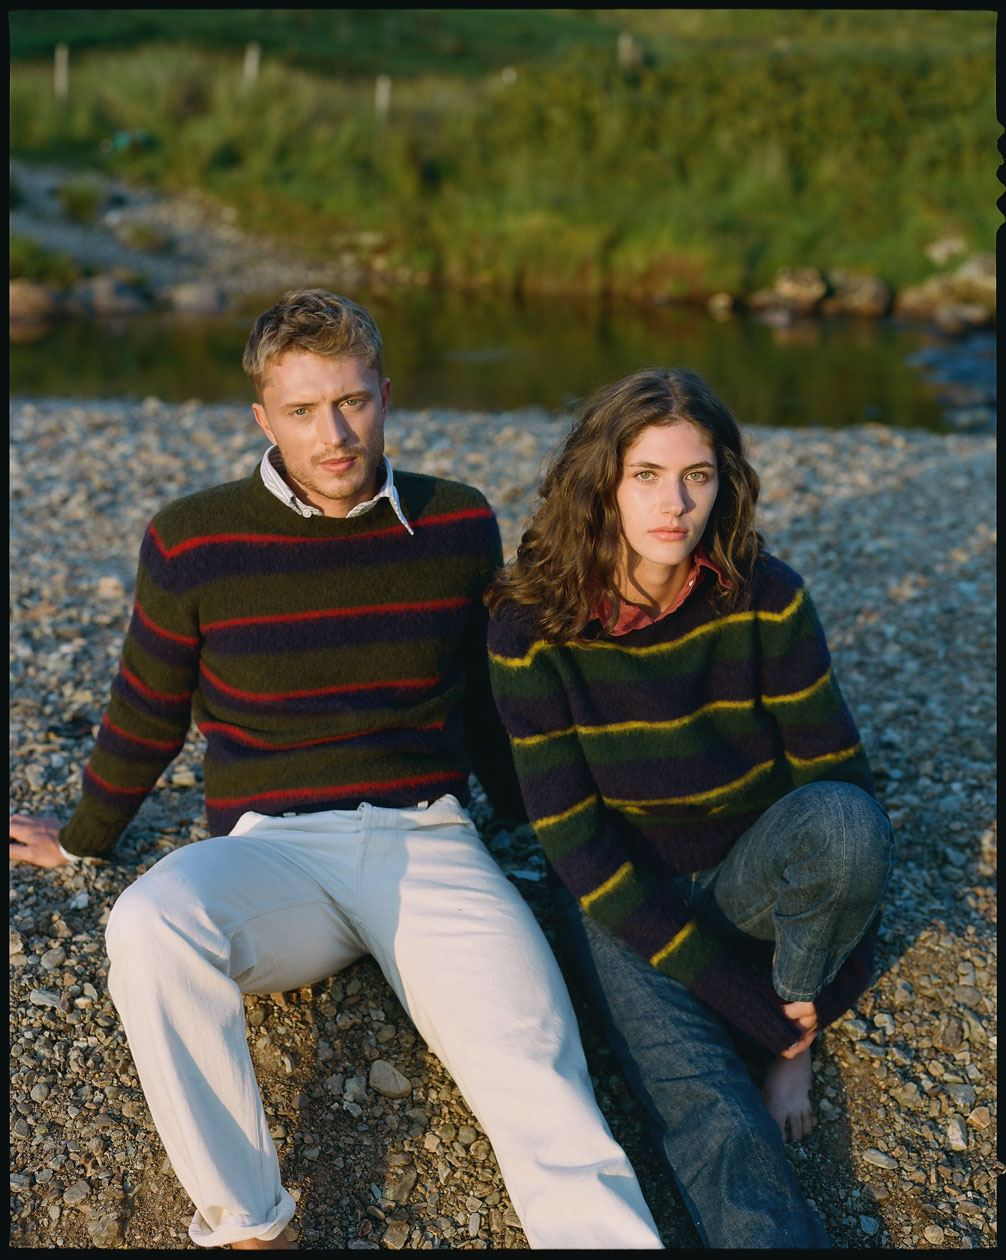 Pattern Recognition: Brushed Repp Stripe Jumpers